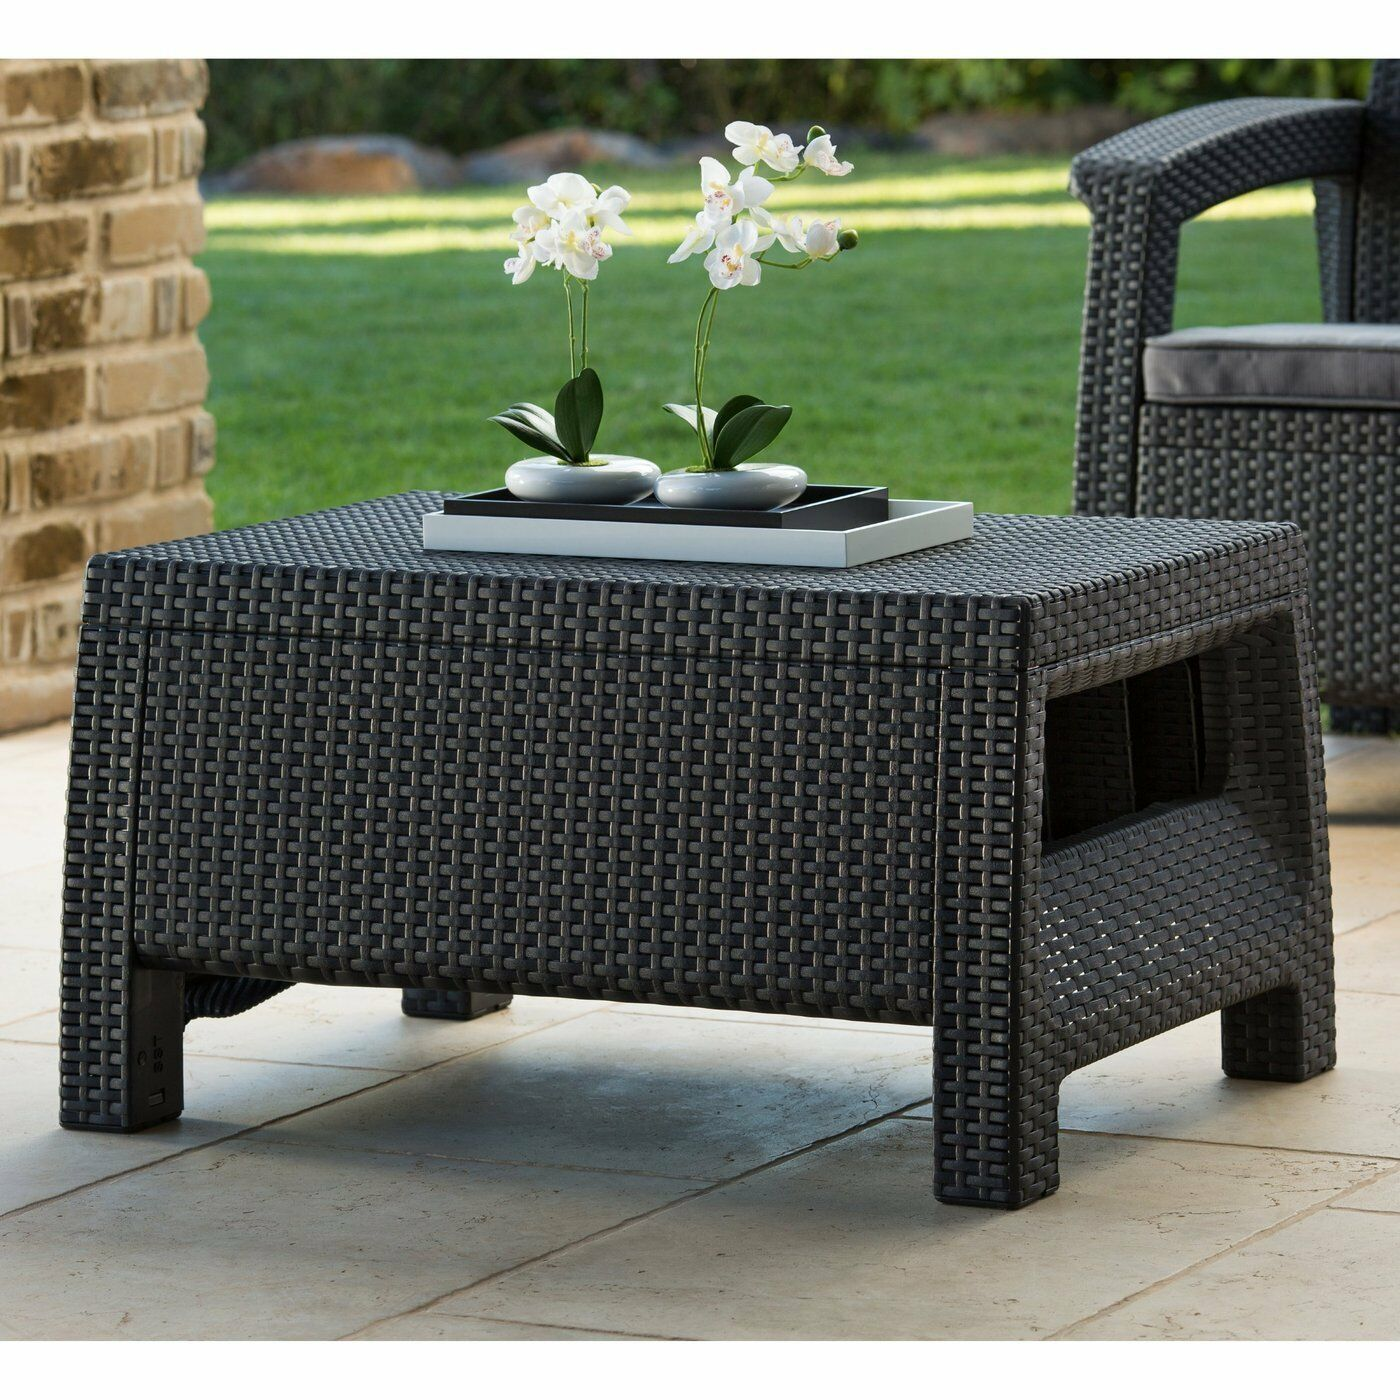 Wicker Coffee Table Outdoor Patio Rattan Side End Deck Porch Yard Furniture Grey Ebay